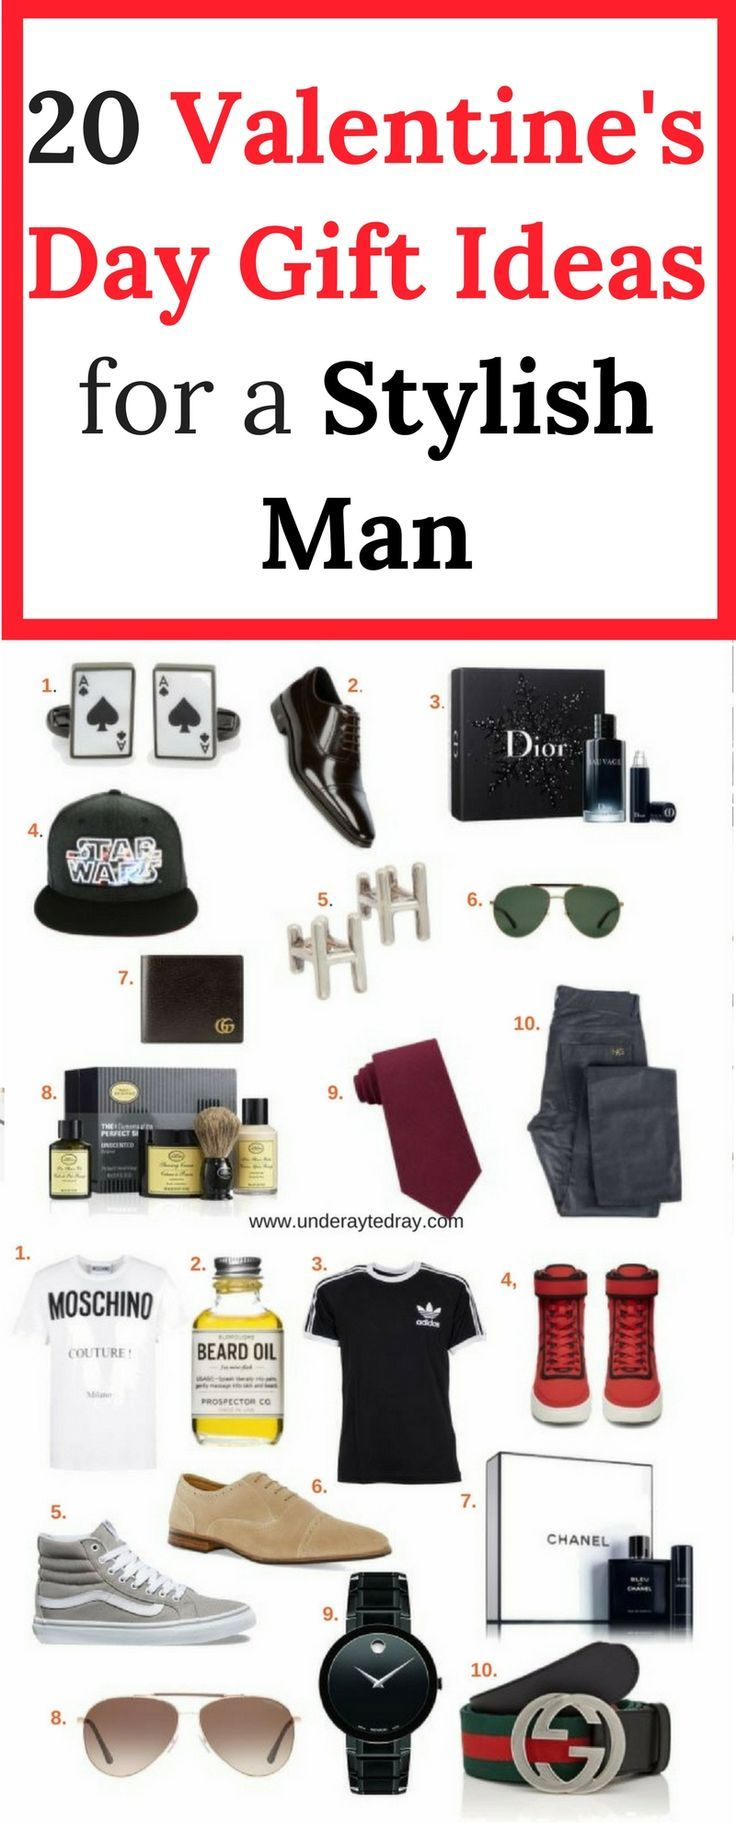 Top 20 gifts luxury for men forecast to wear for summer in 2019